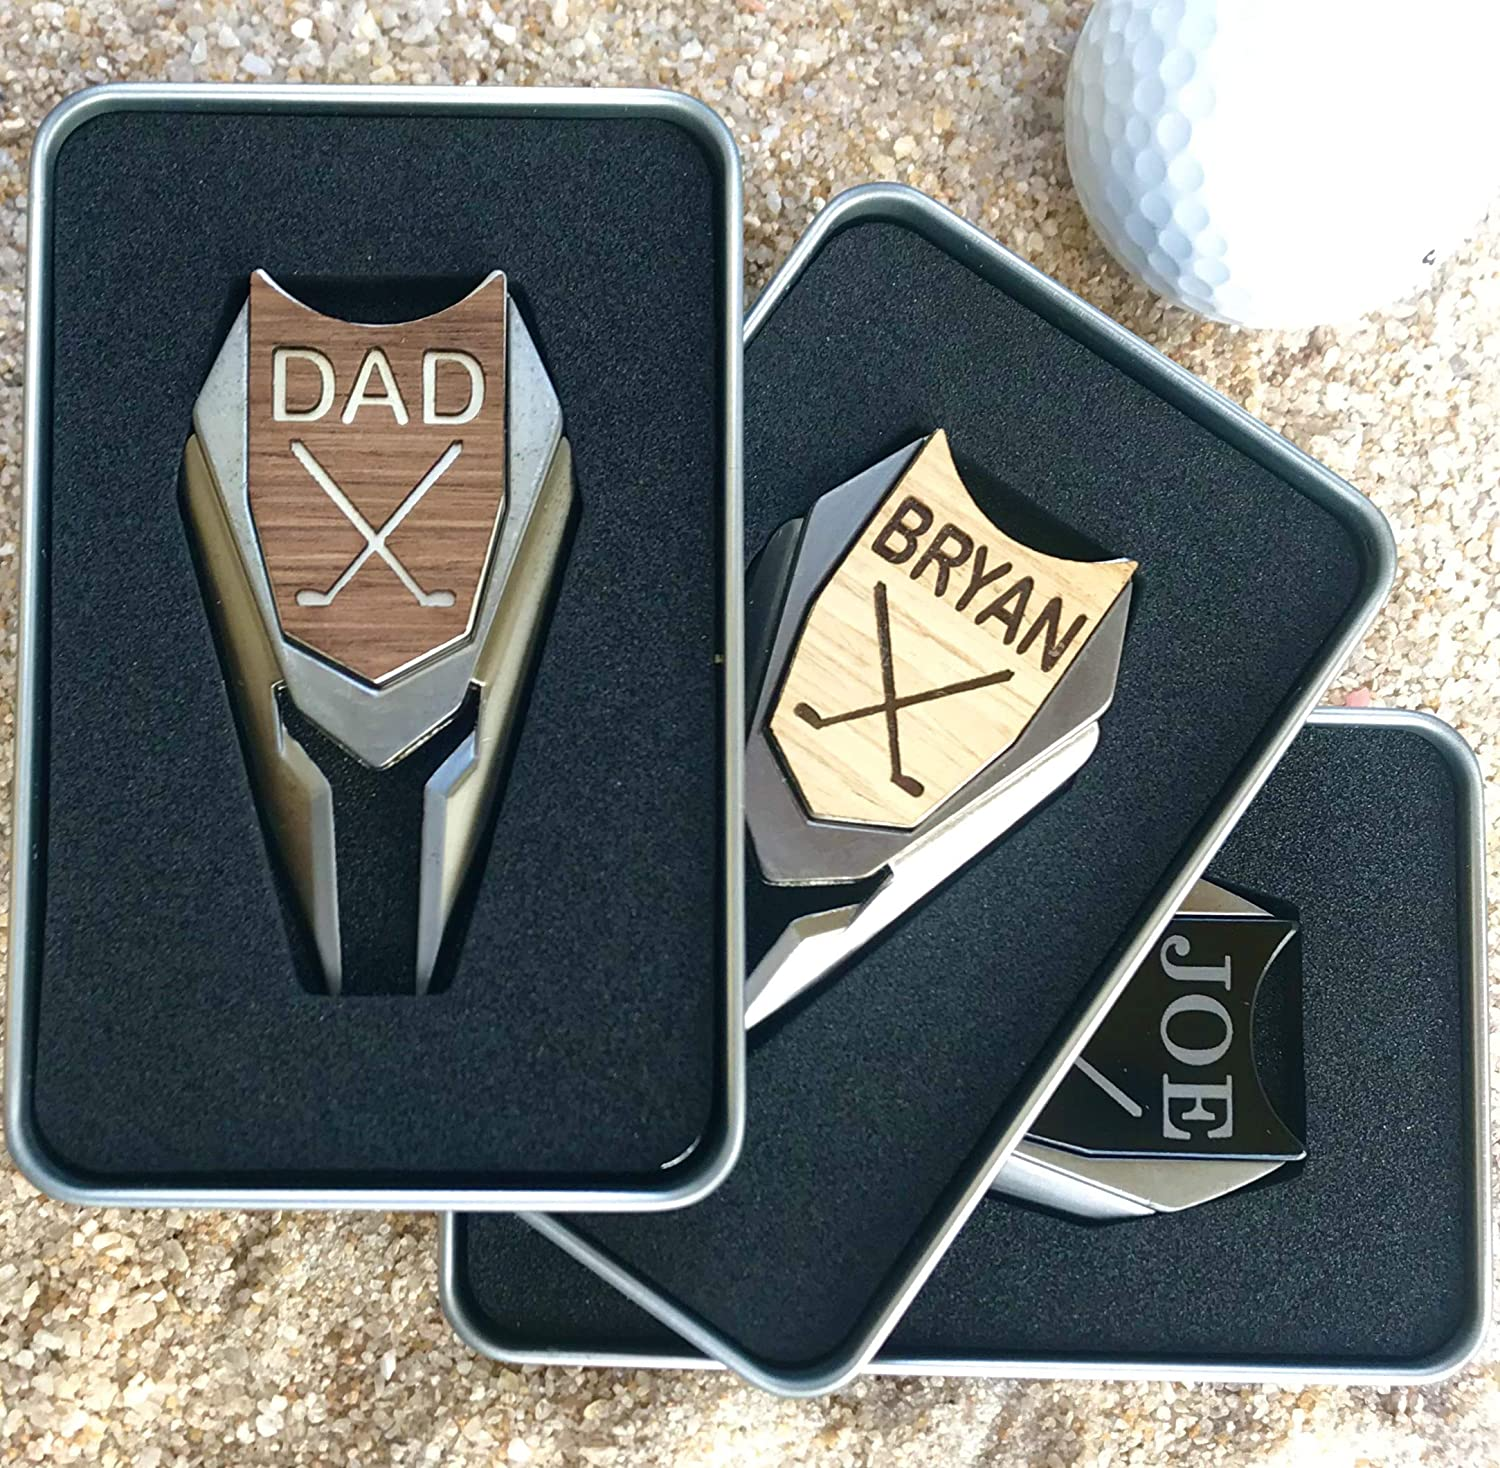 B015OW5EM2 Divot Tool Golf Ball Marker in Custom Metal Gift Box REAL Wood Personalized Golfers Markers 912uQrtuCNL